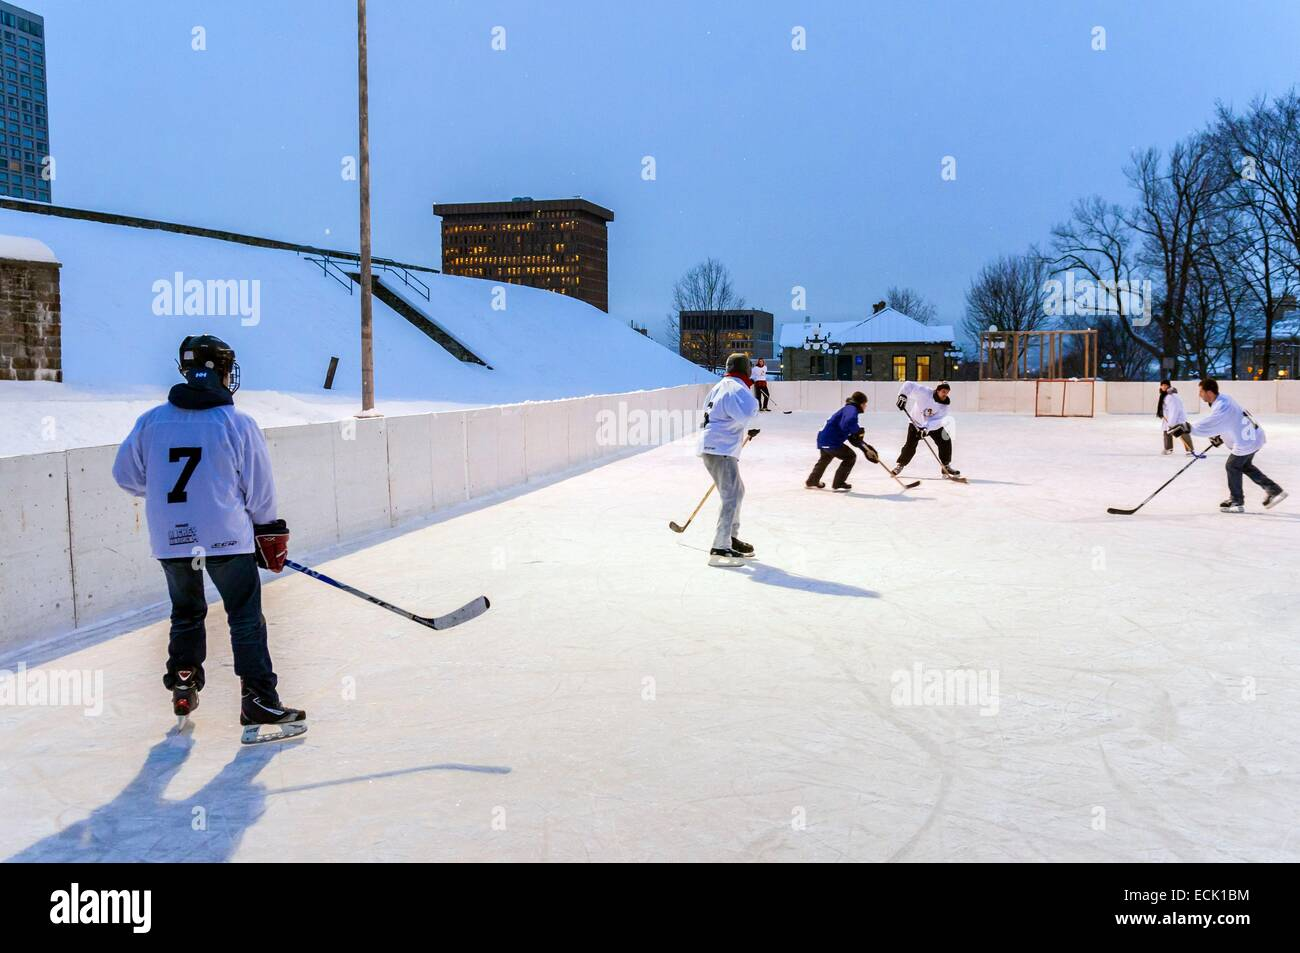 Canada, Quebec province, Quebec, ice hockey, old city center listed as World Heritage by UNESCO - Stock Image